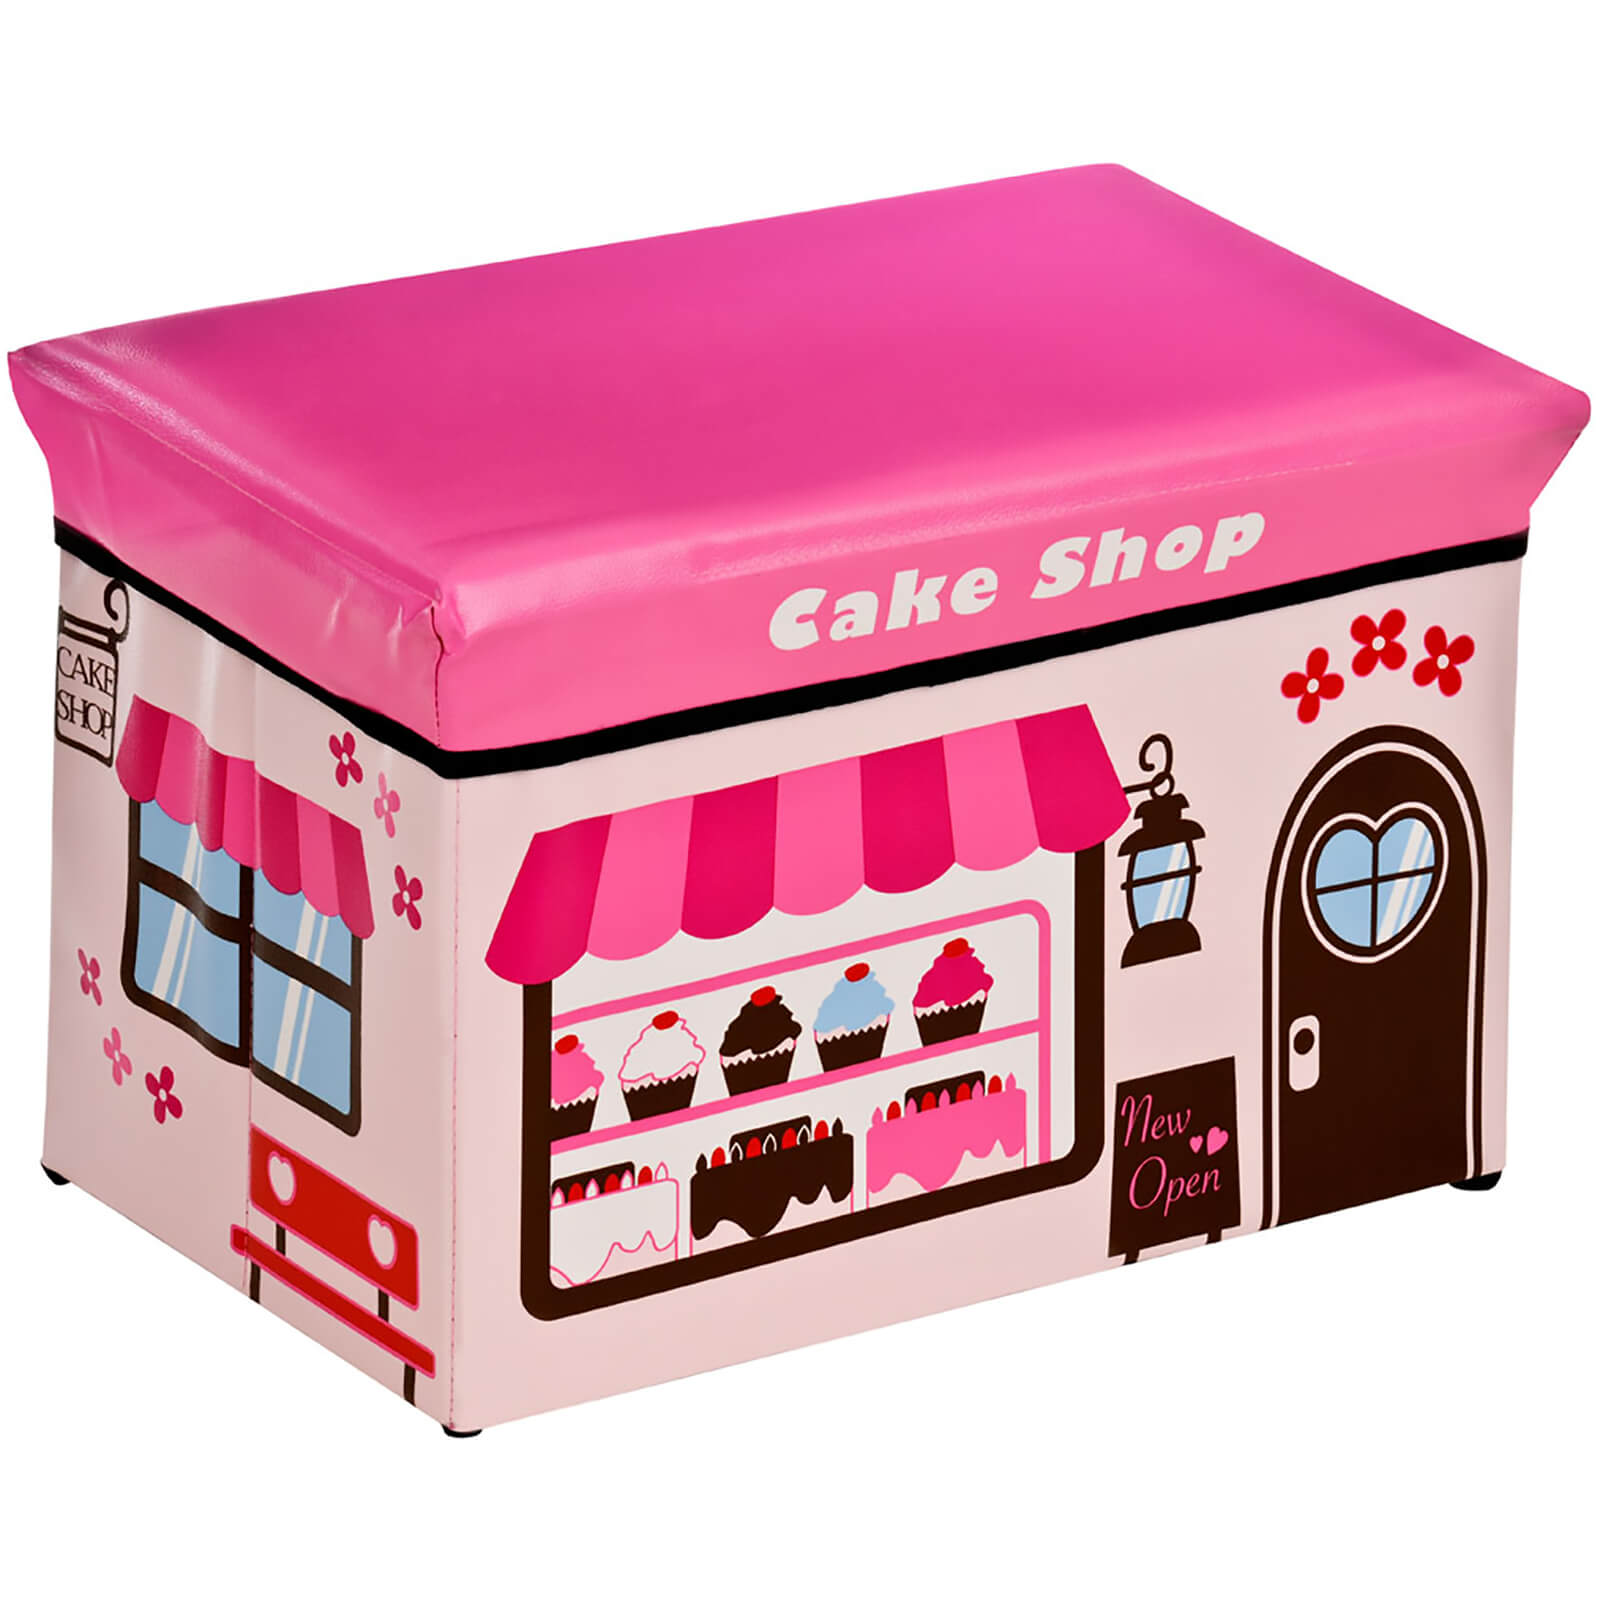 Premier Housewares Cake Shop Design Children